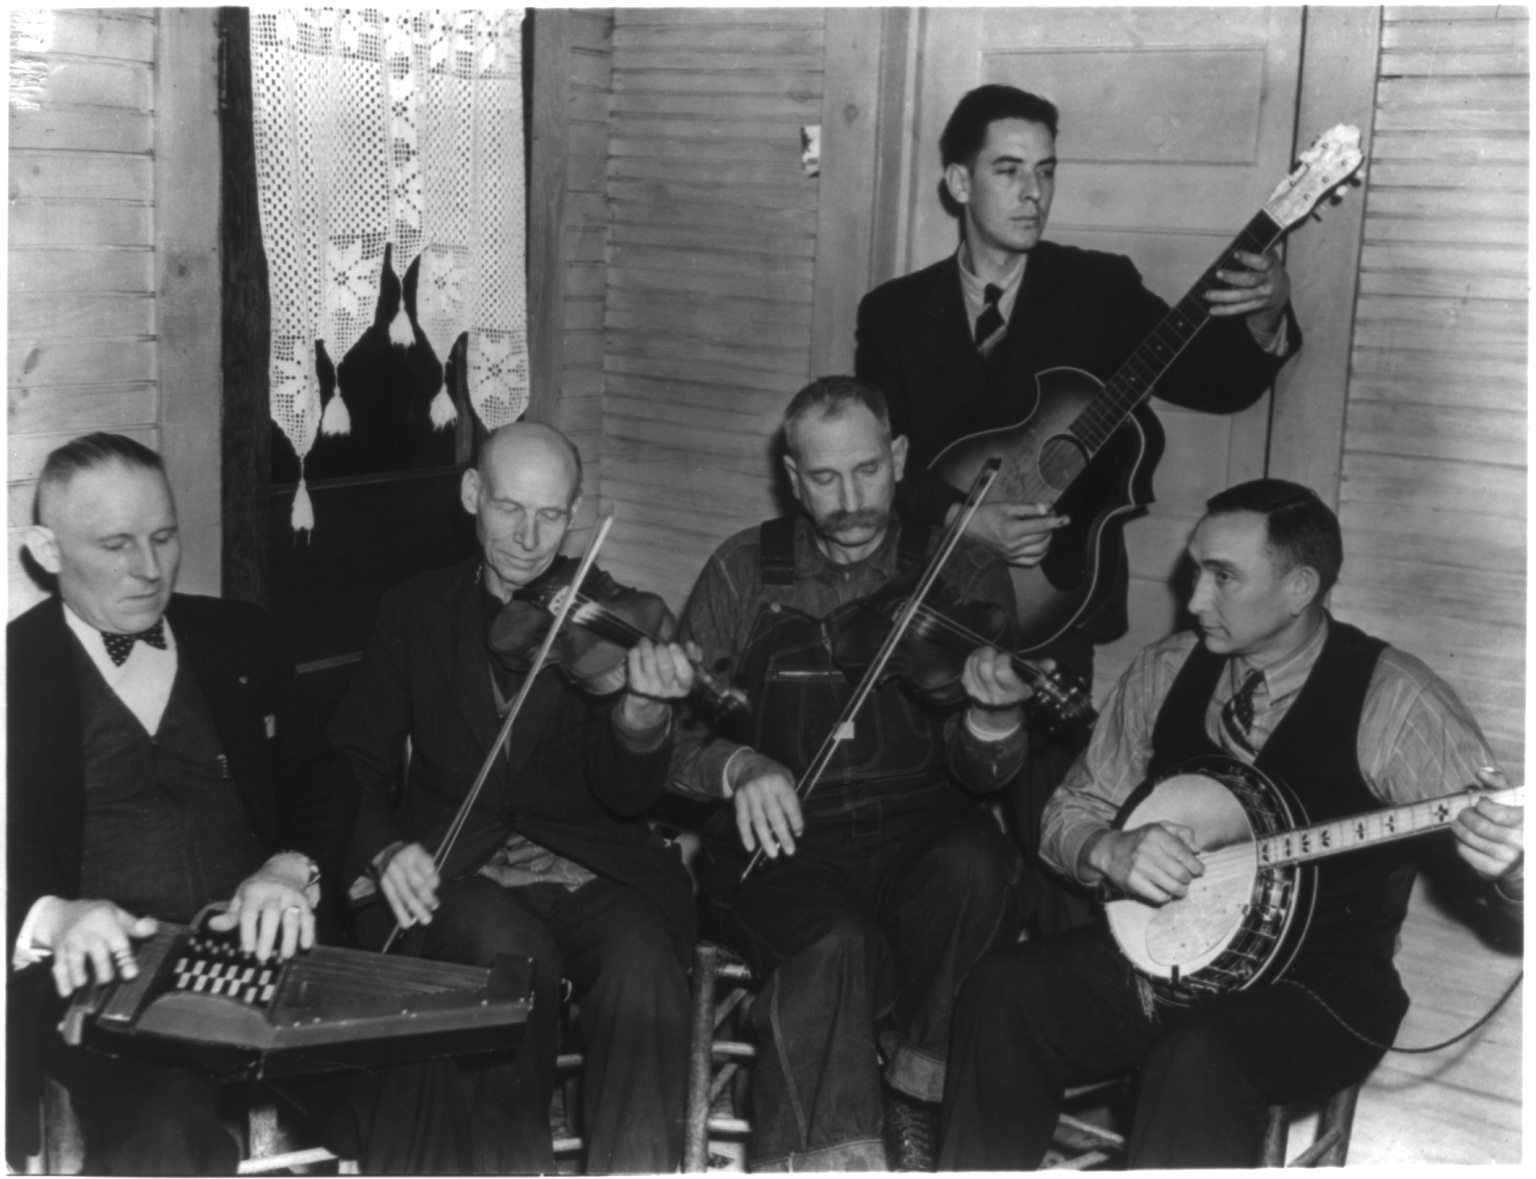 Caption: The Bogtrotters were a Galax, Virginia-area band – shown here in 1937 – active in the early years of the Galax Old Fiddlers' Convention, which was founded in 1935.  (L-R Doctor W.P. Davis, Uncle Alec Dunford, Crockett Ward, Fields Ward, Wade Ward) This we, Credit: Library of Congress, Alan Lomax Collection.